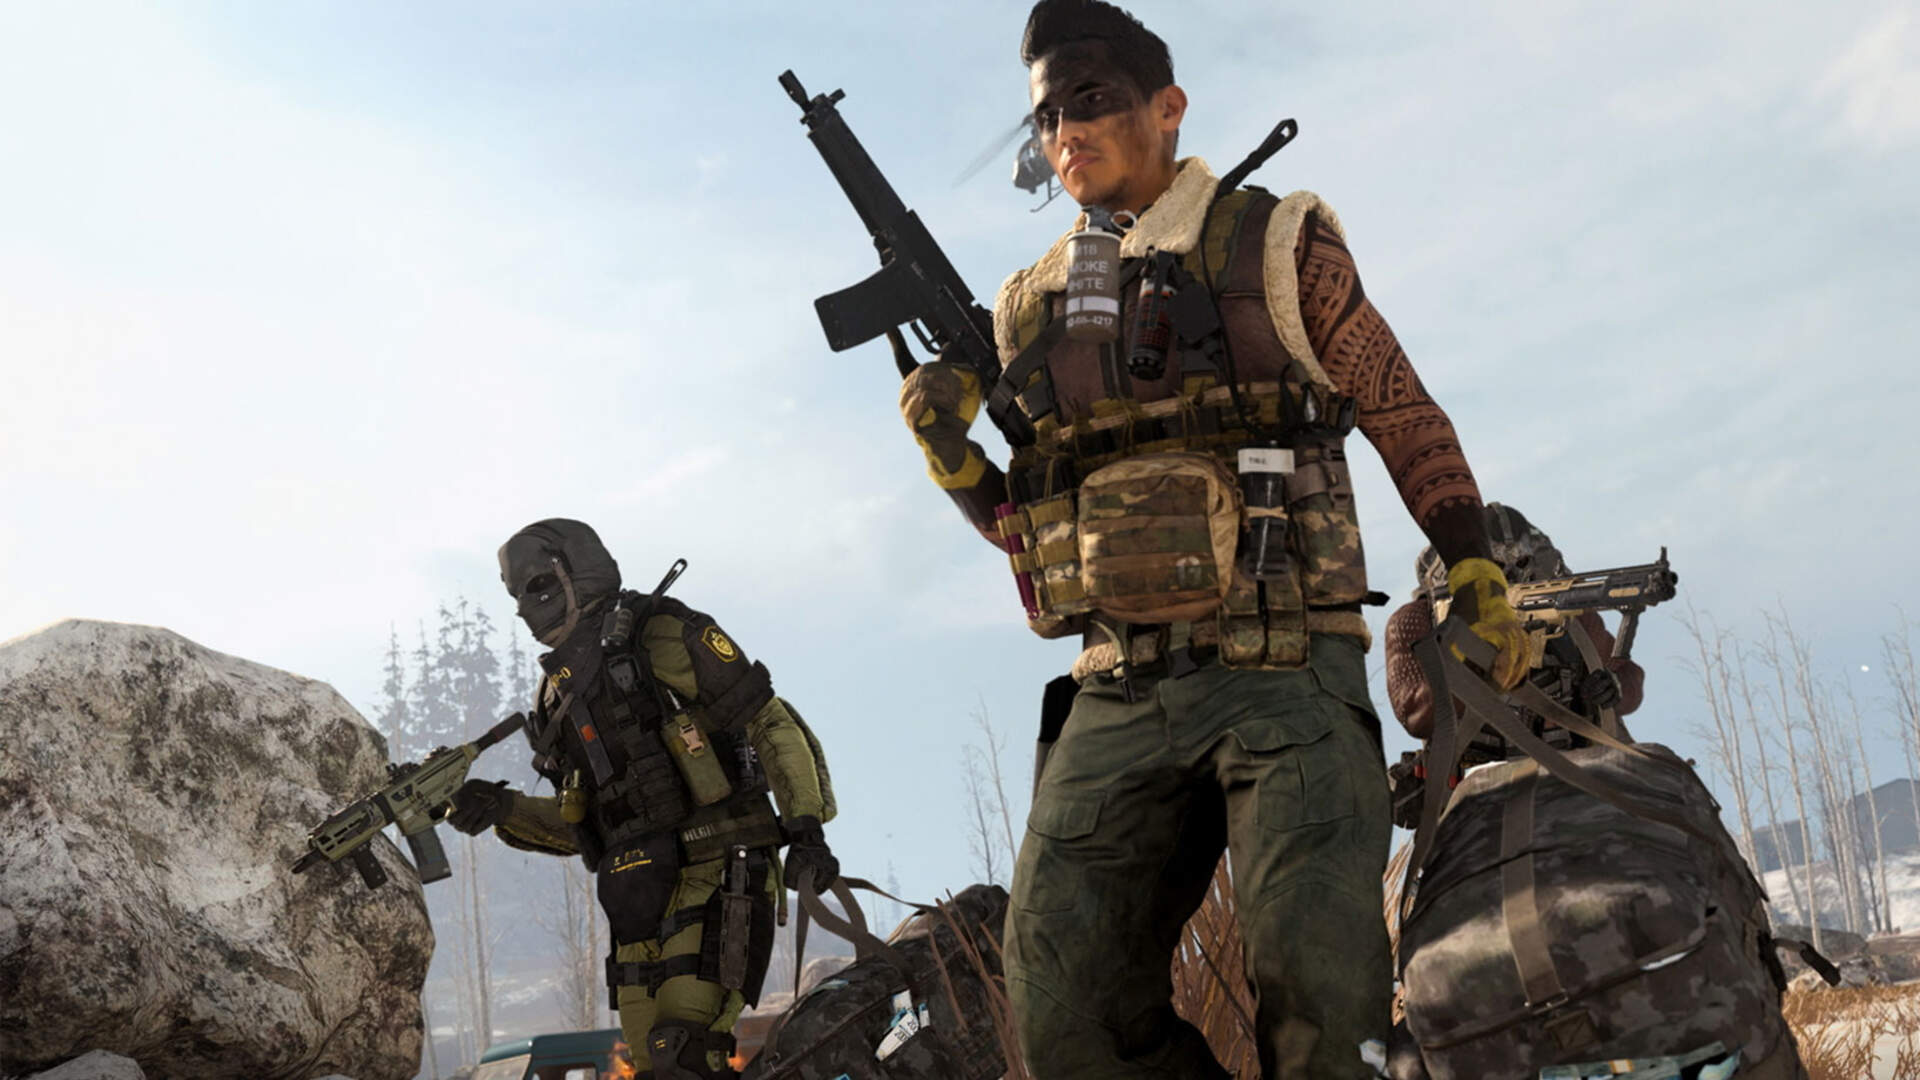 Call of Duty Studio Sledgehammer Hiring 100 Devs Over the Next Year to Work on Multiple New Games